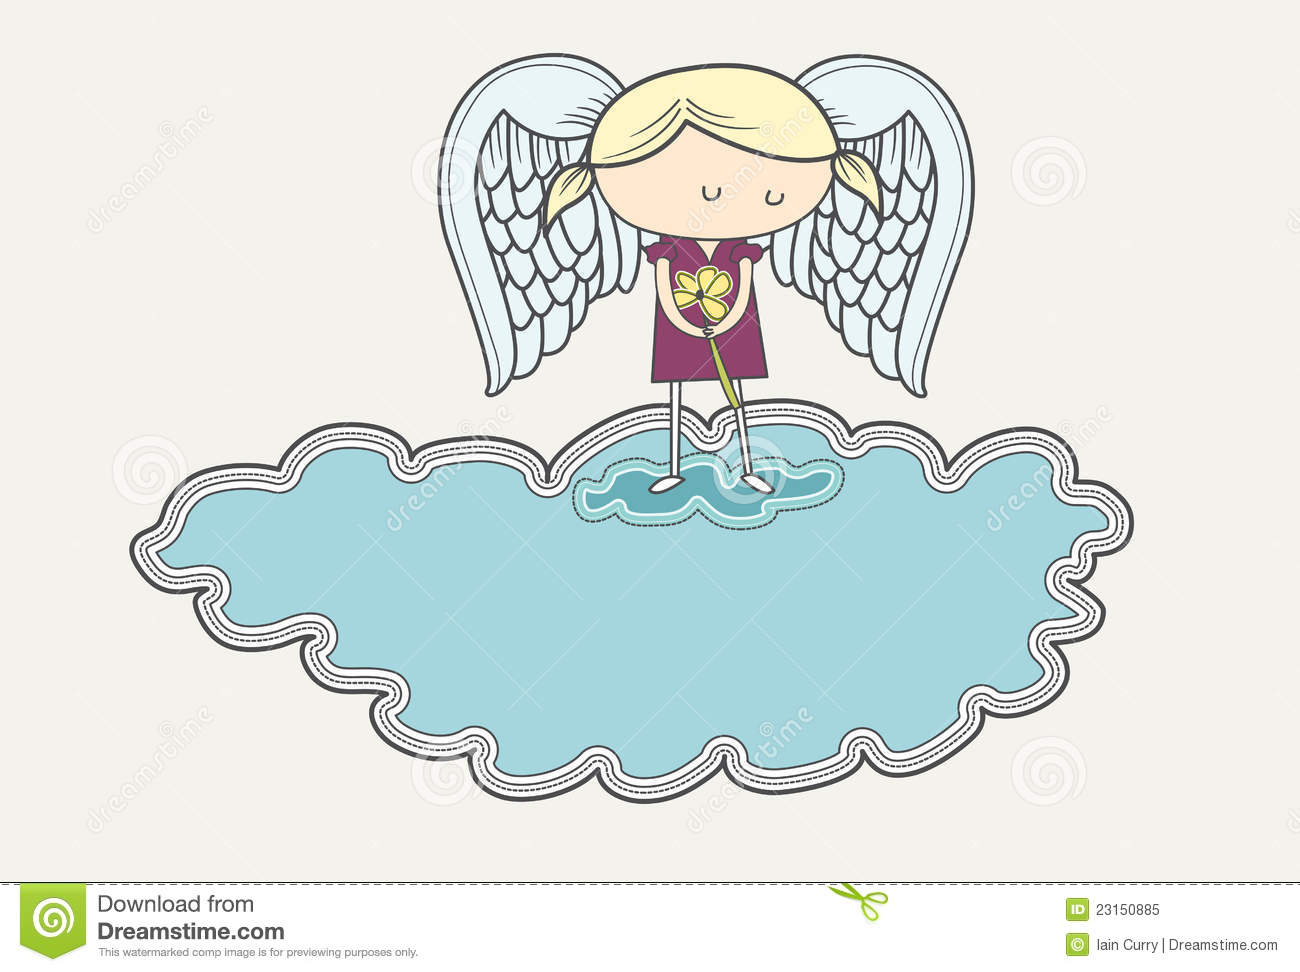 Bereavement Stock Illustrations.